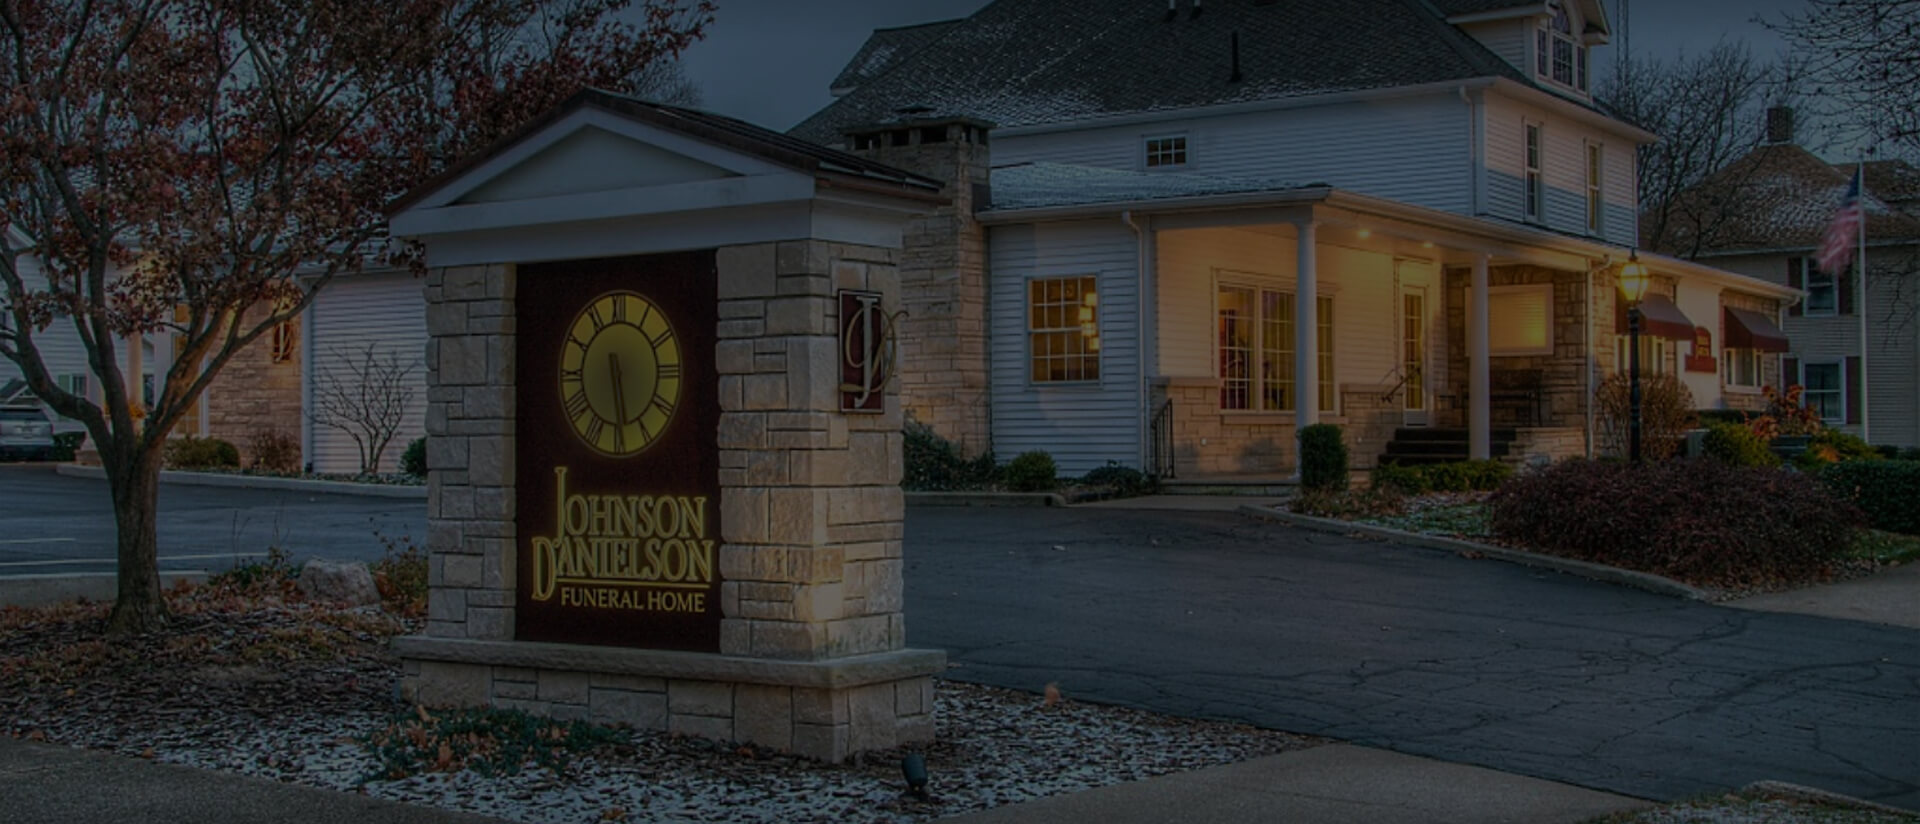 Johnson-Danielson Funeral Home